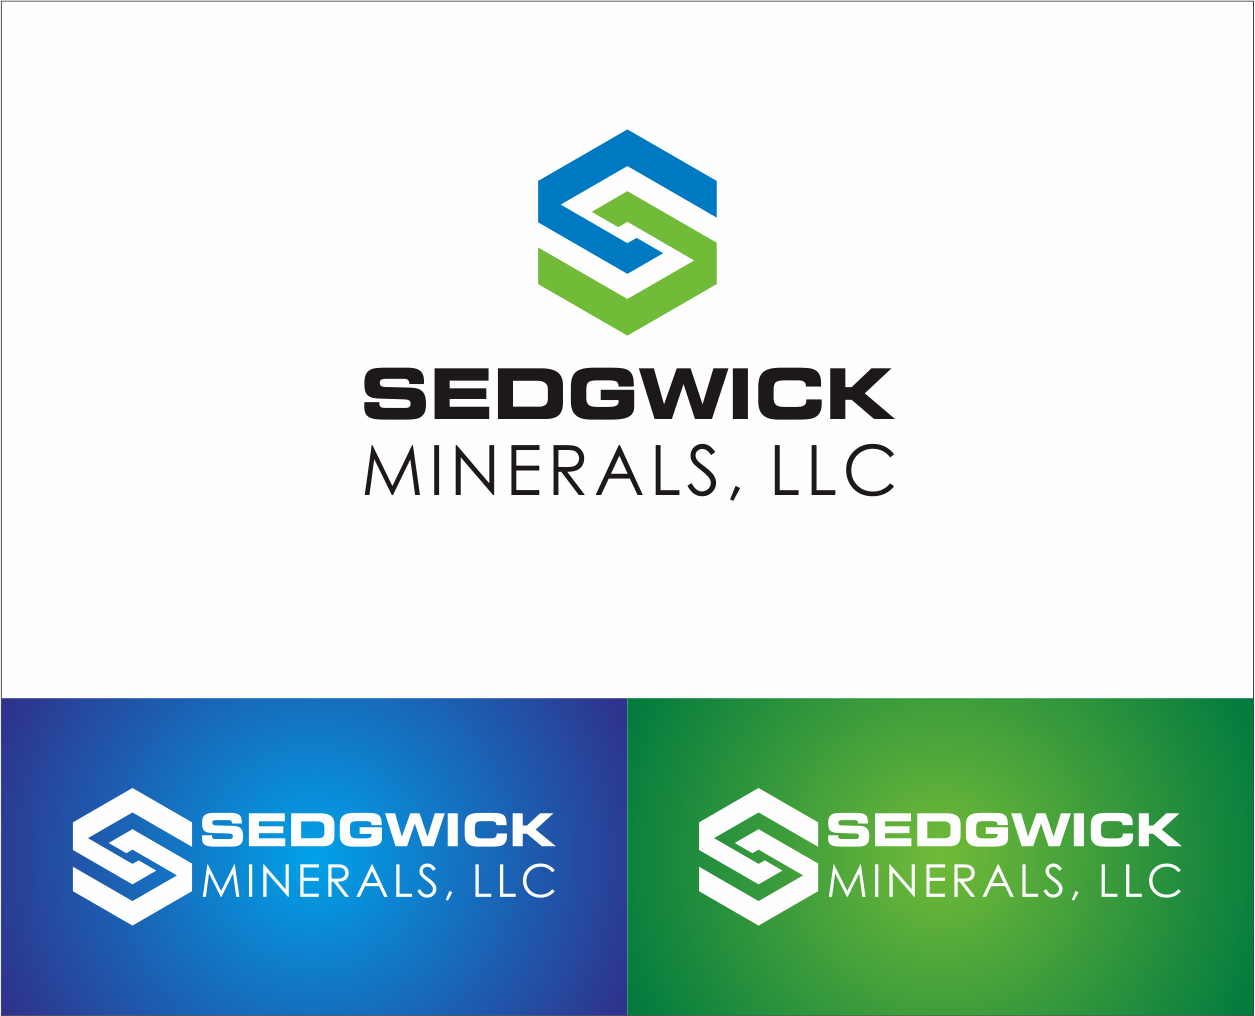 Logo Design by Armada Jamaluddin - Entry No. 69 in the Logo Design Contest Inspiring Logo Design for Sedgwick Minerals, LLC.